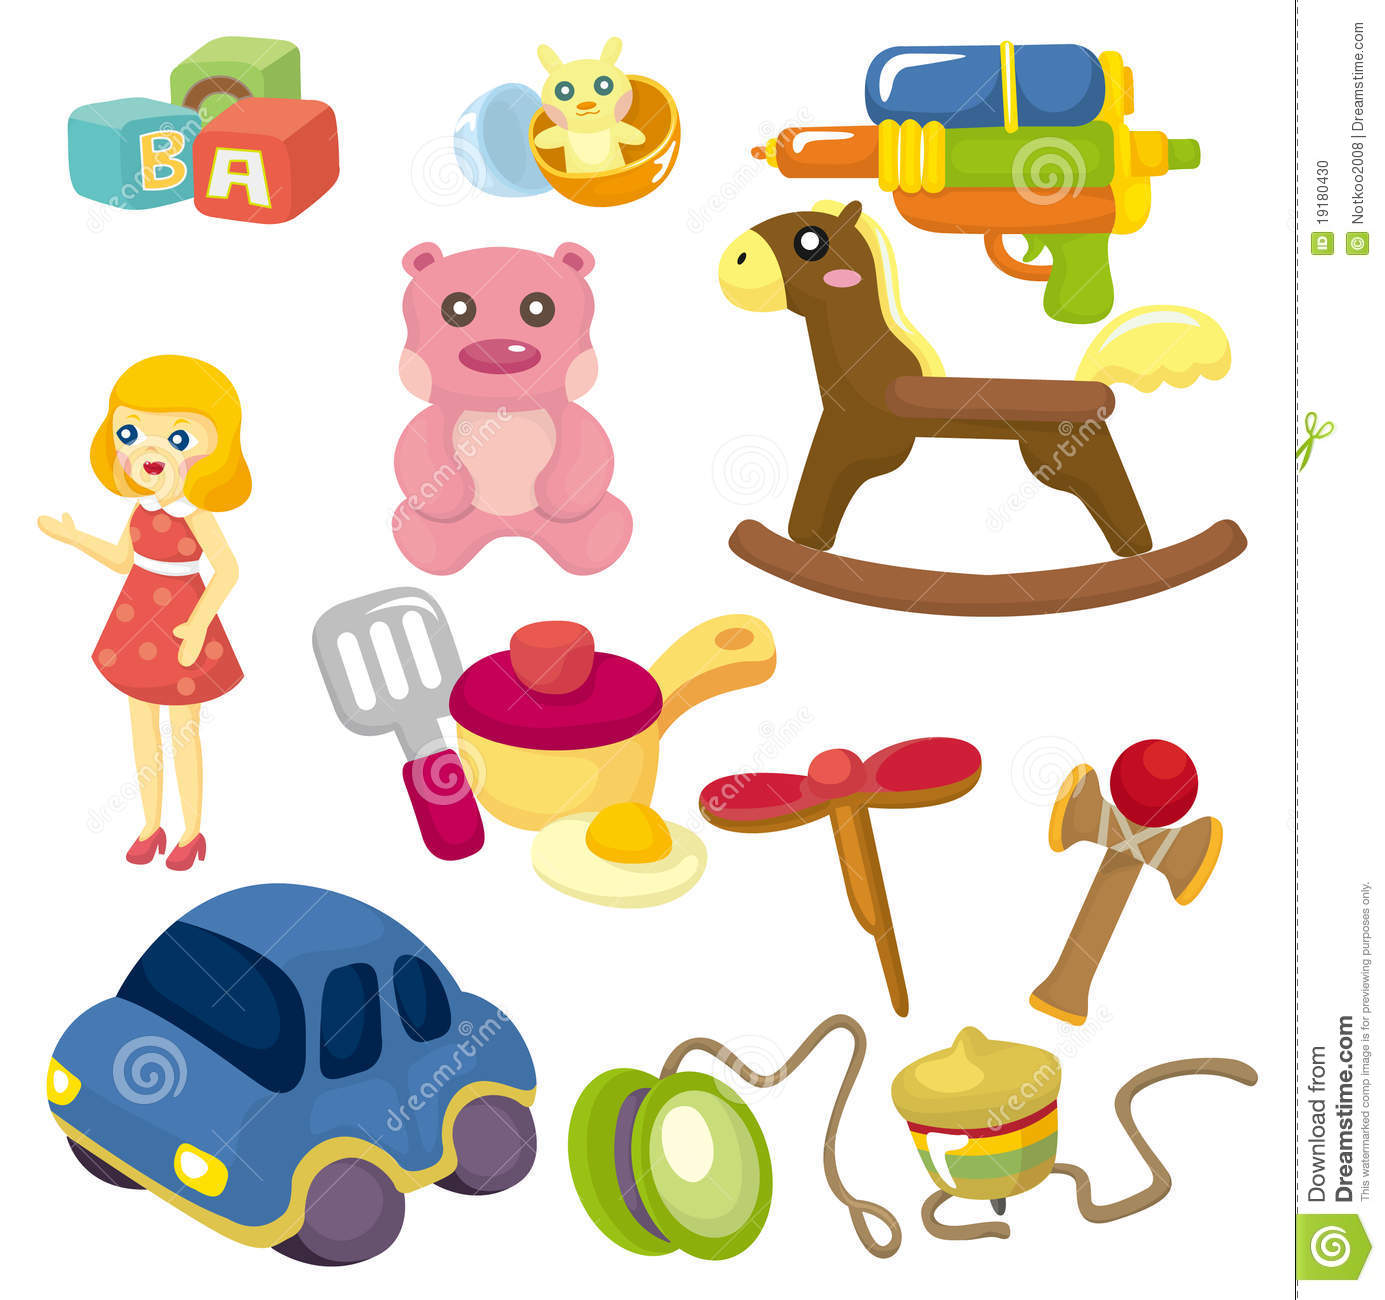 Cartoon Baby Toys : Cartoon baby toy icon stock vector illustration of color